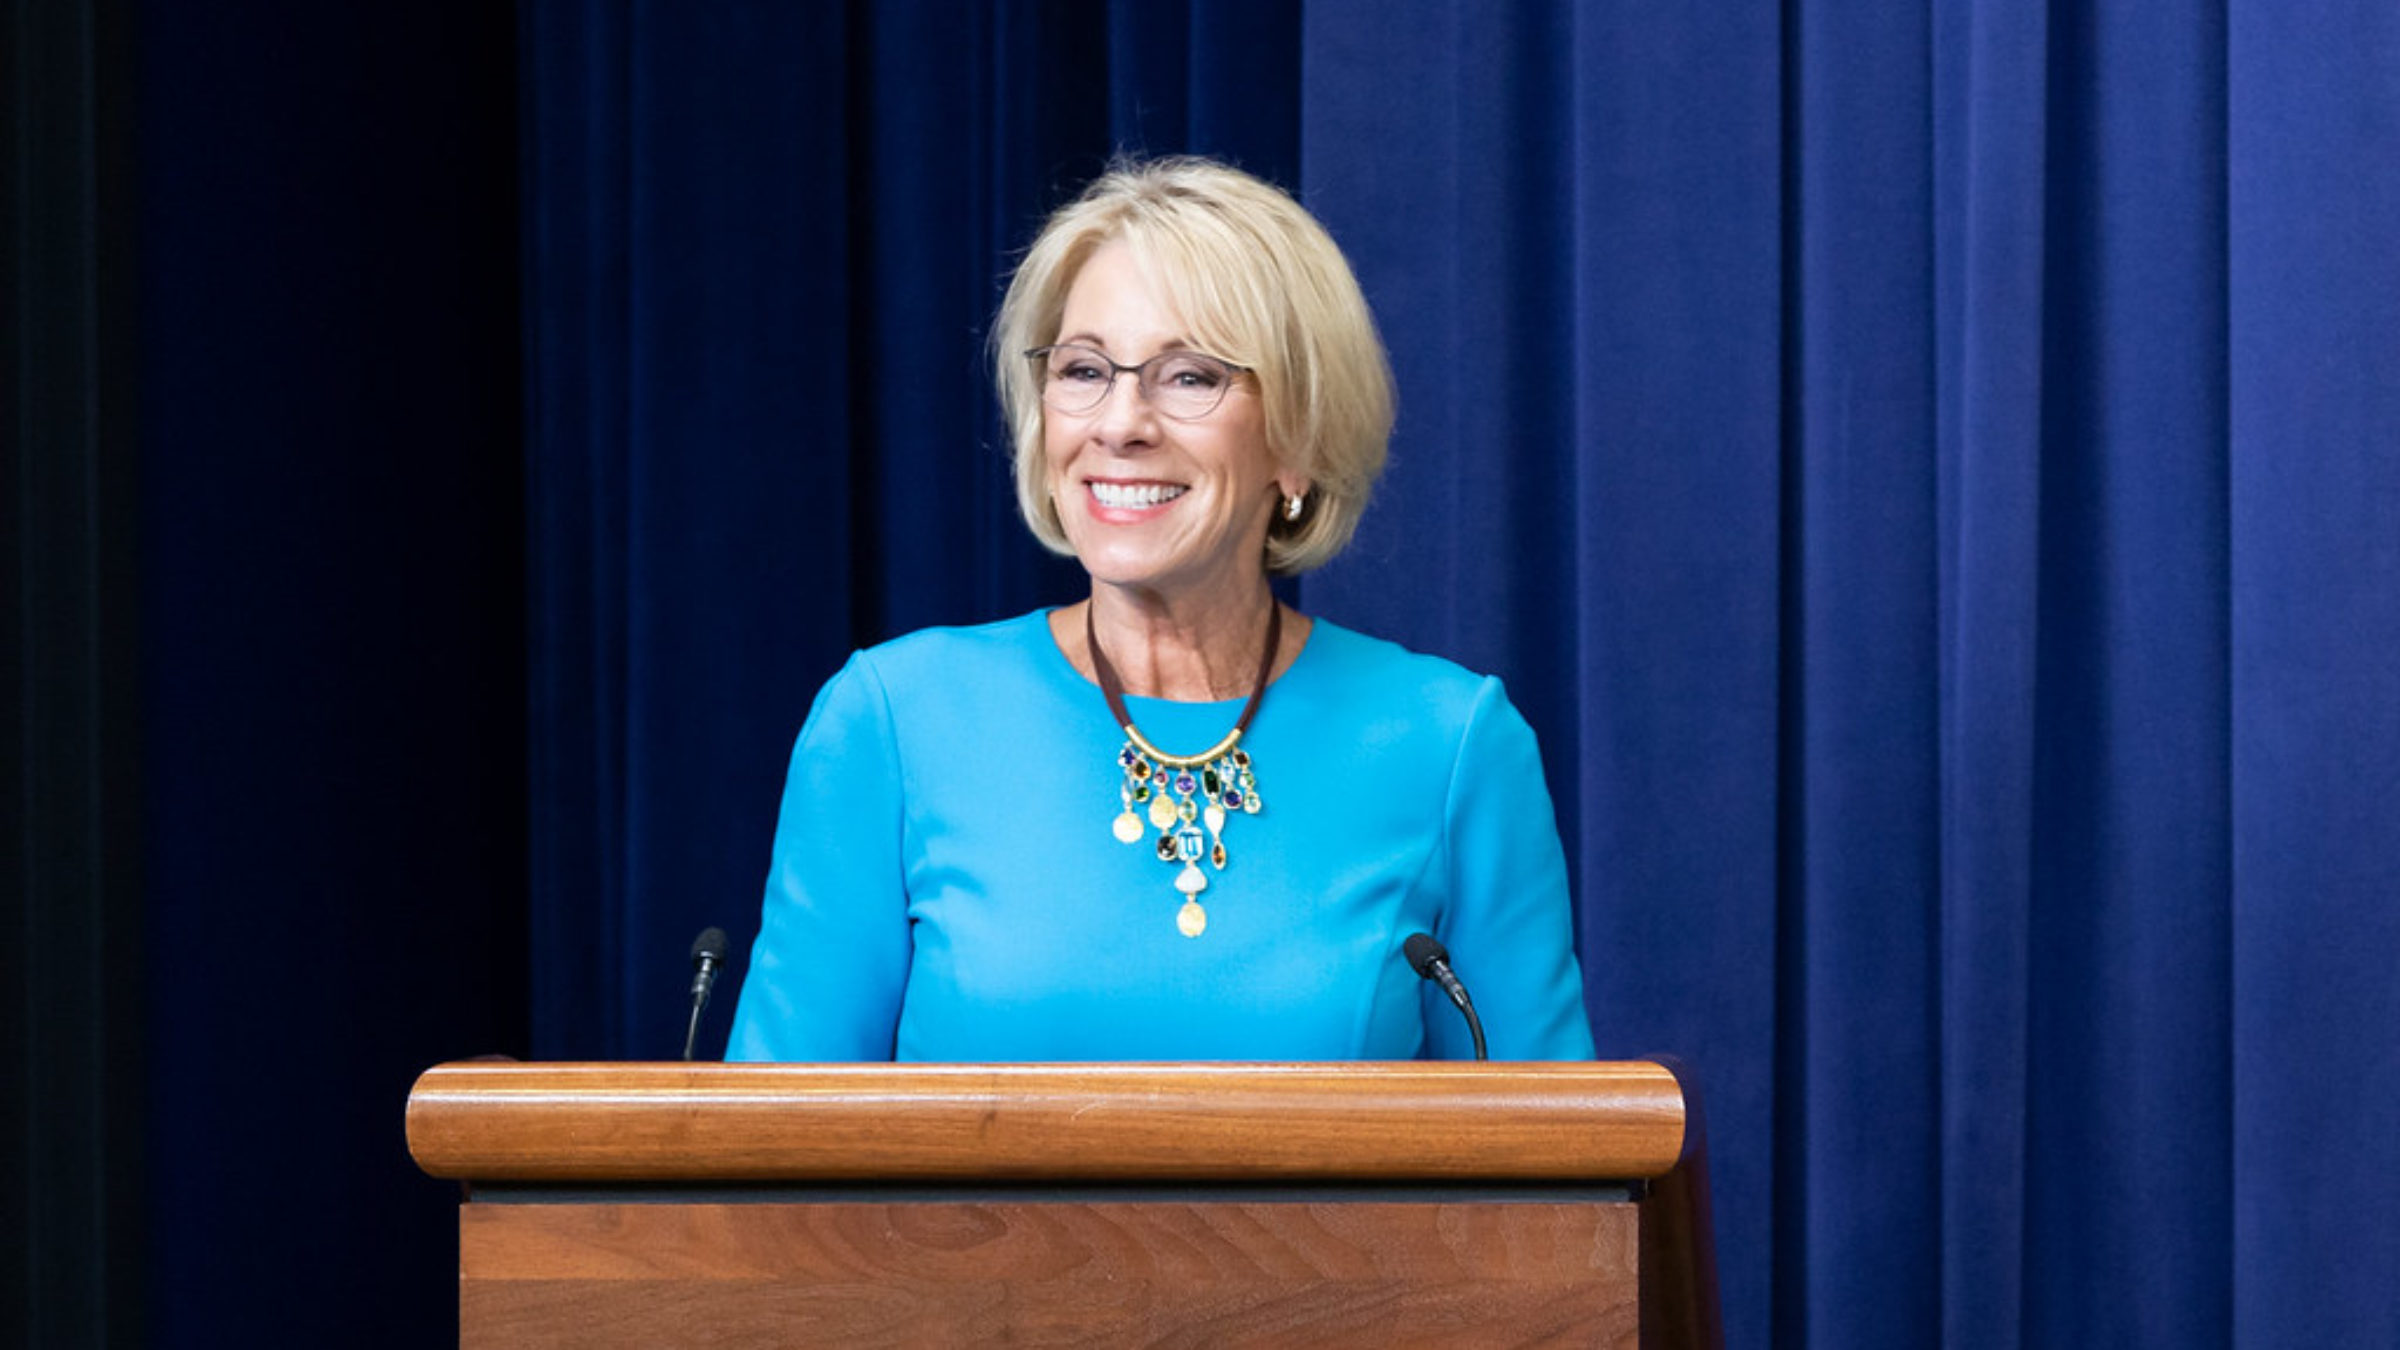 Betsy DeVos smiles while at a podium